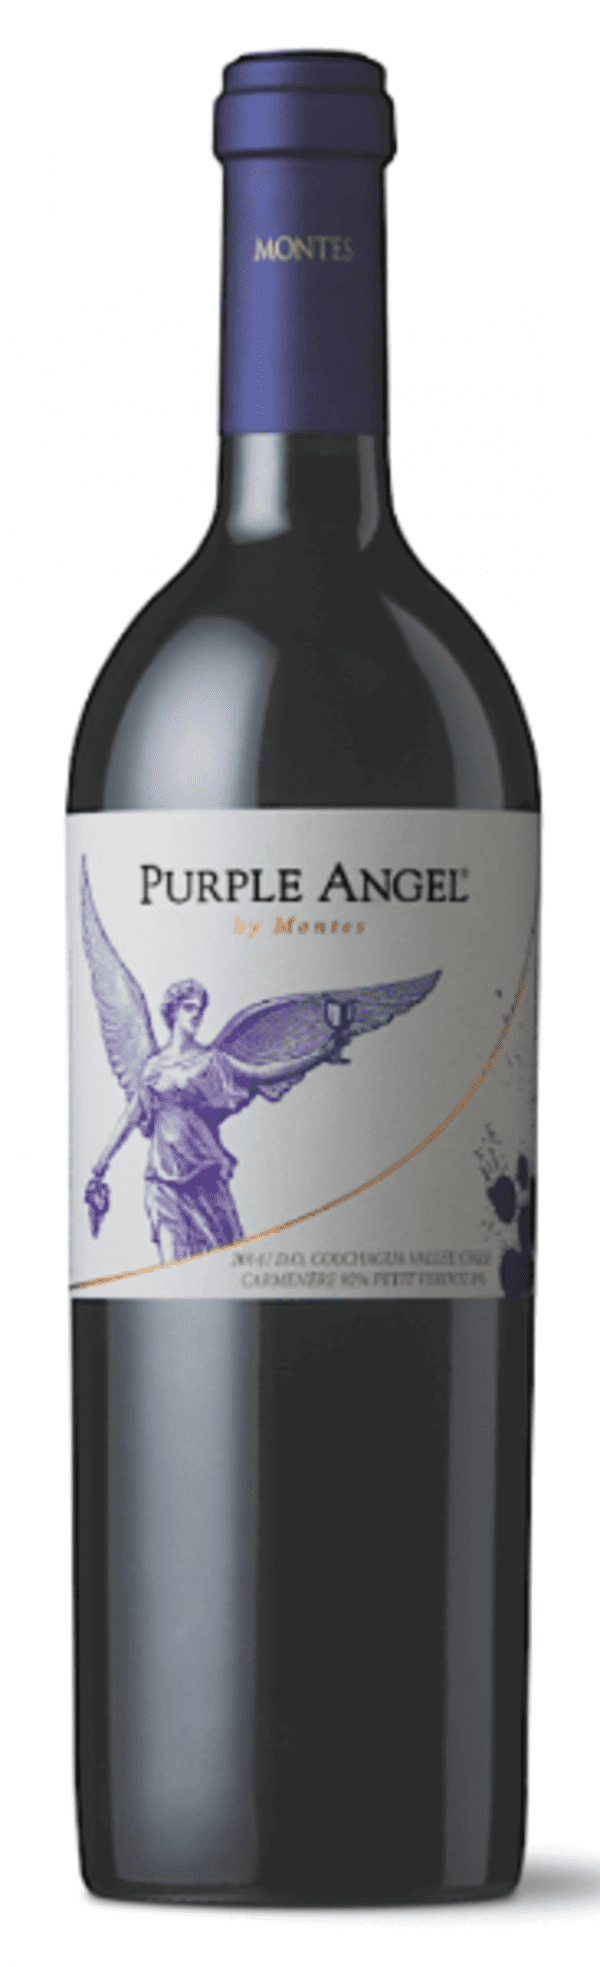 PURPLE ANGEL CARMENERE 2016 (TTO) (VINA MONTES)